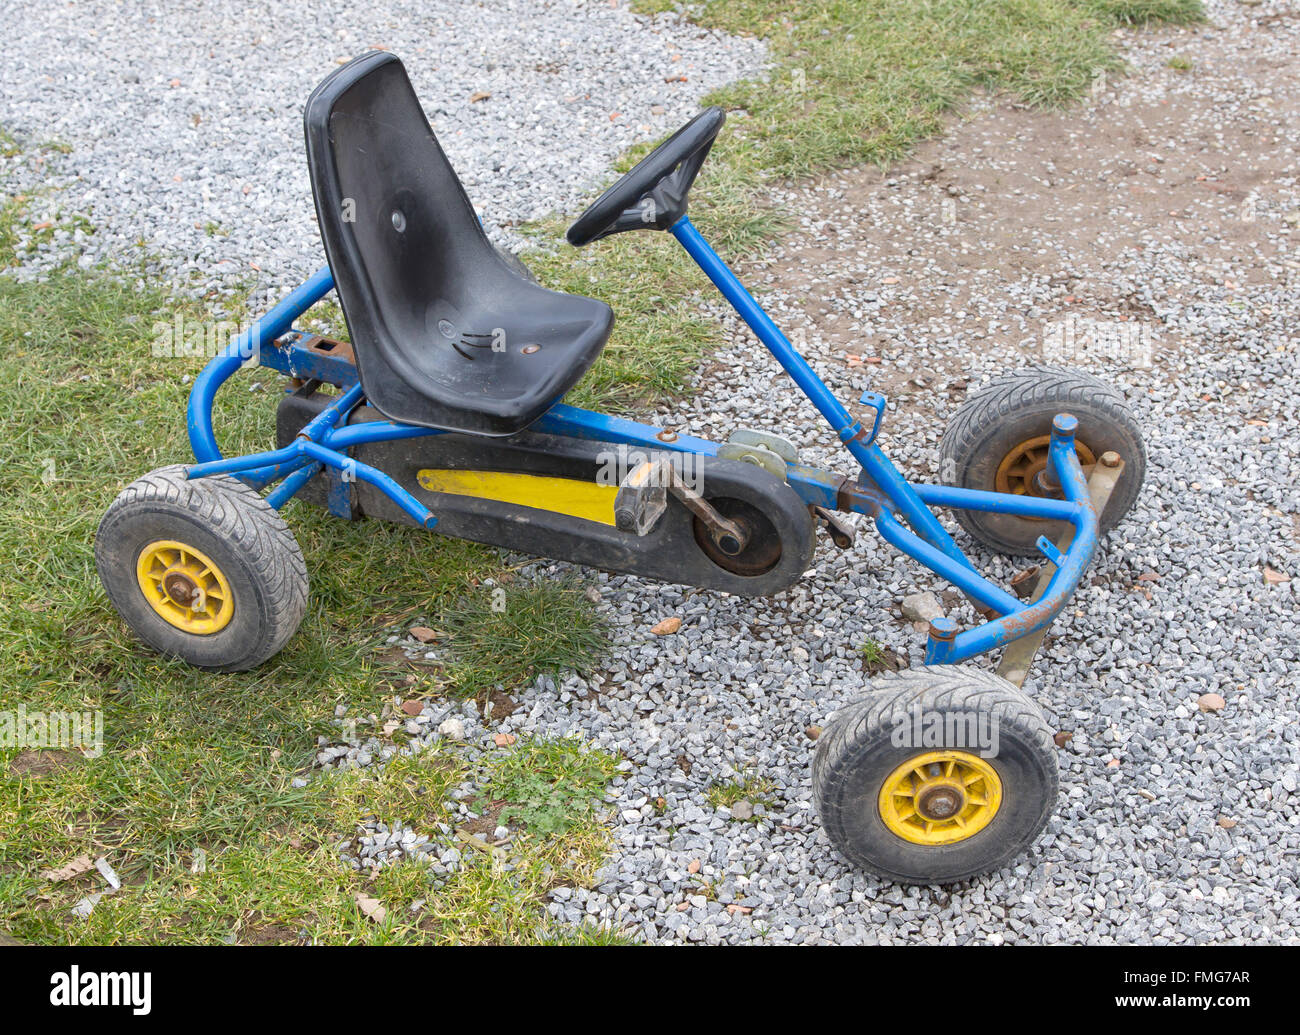 Dirty old go-kart waiting for a kid to play with it Stock